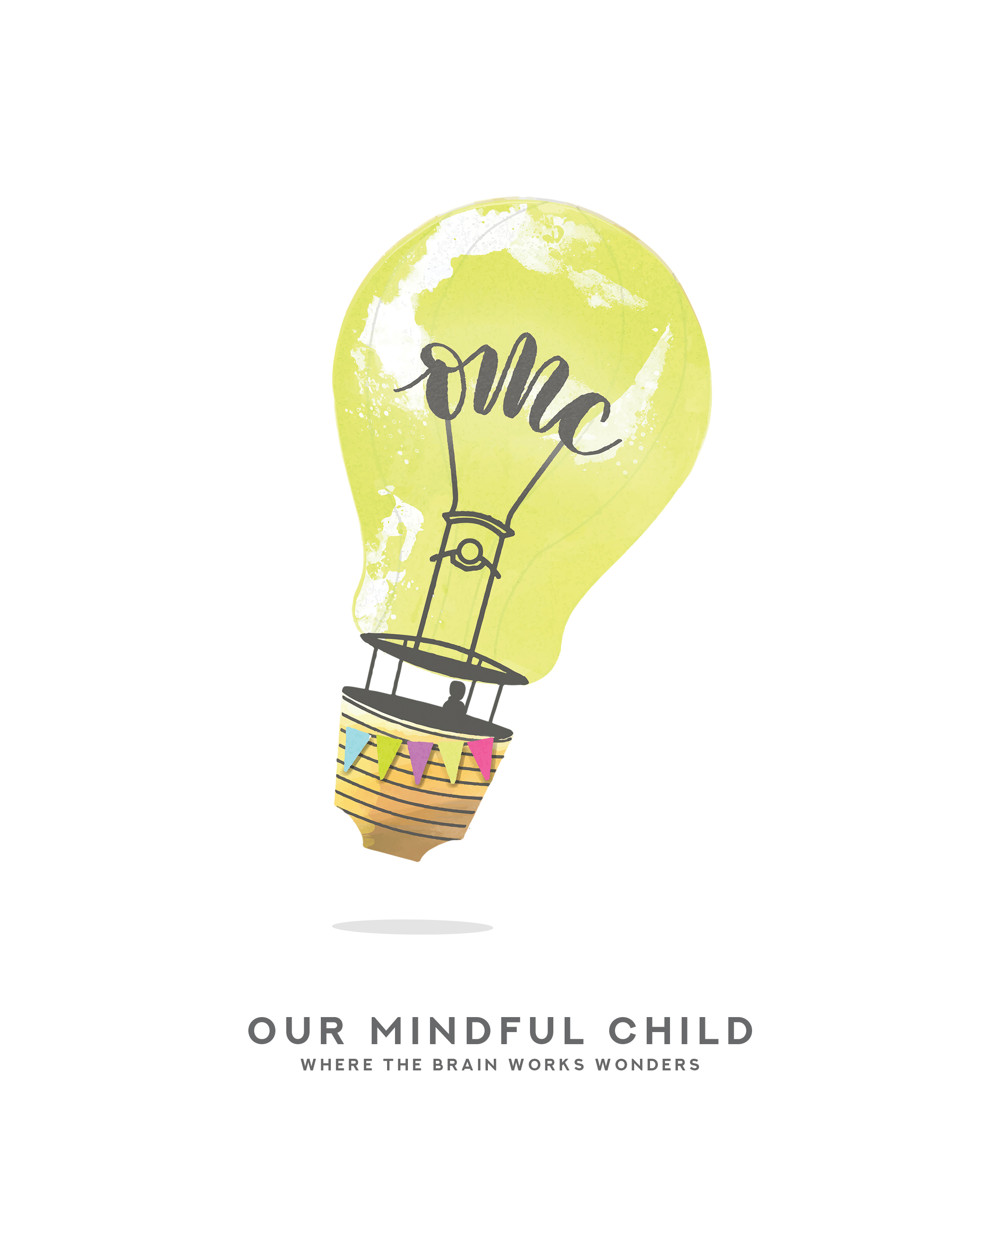 Our Mindful Child